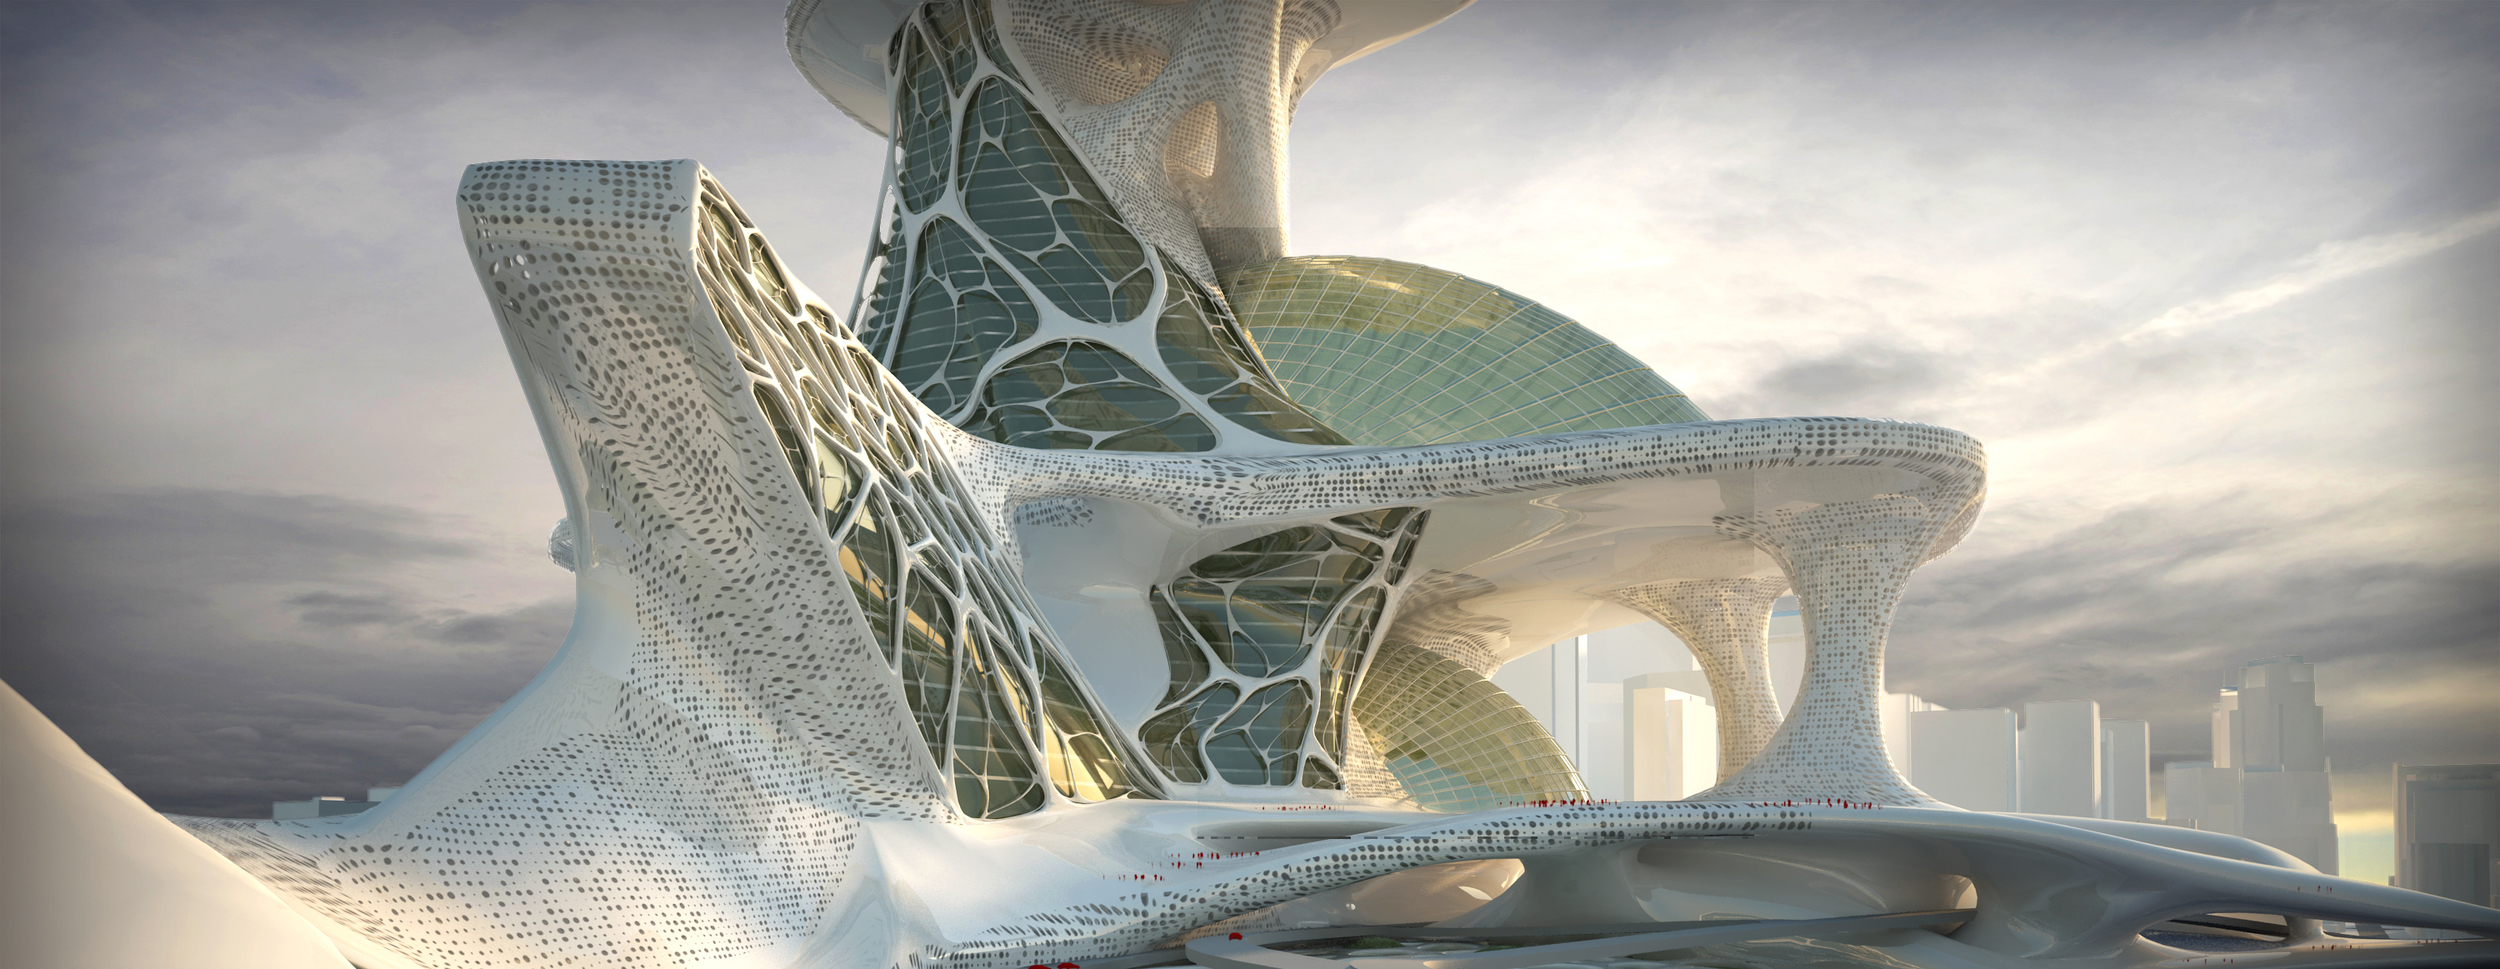 Paskan Tower - Parametric Design of the form and facade